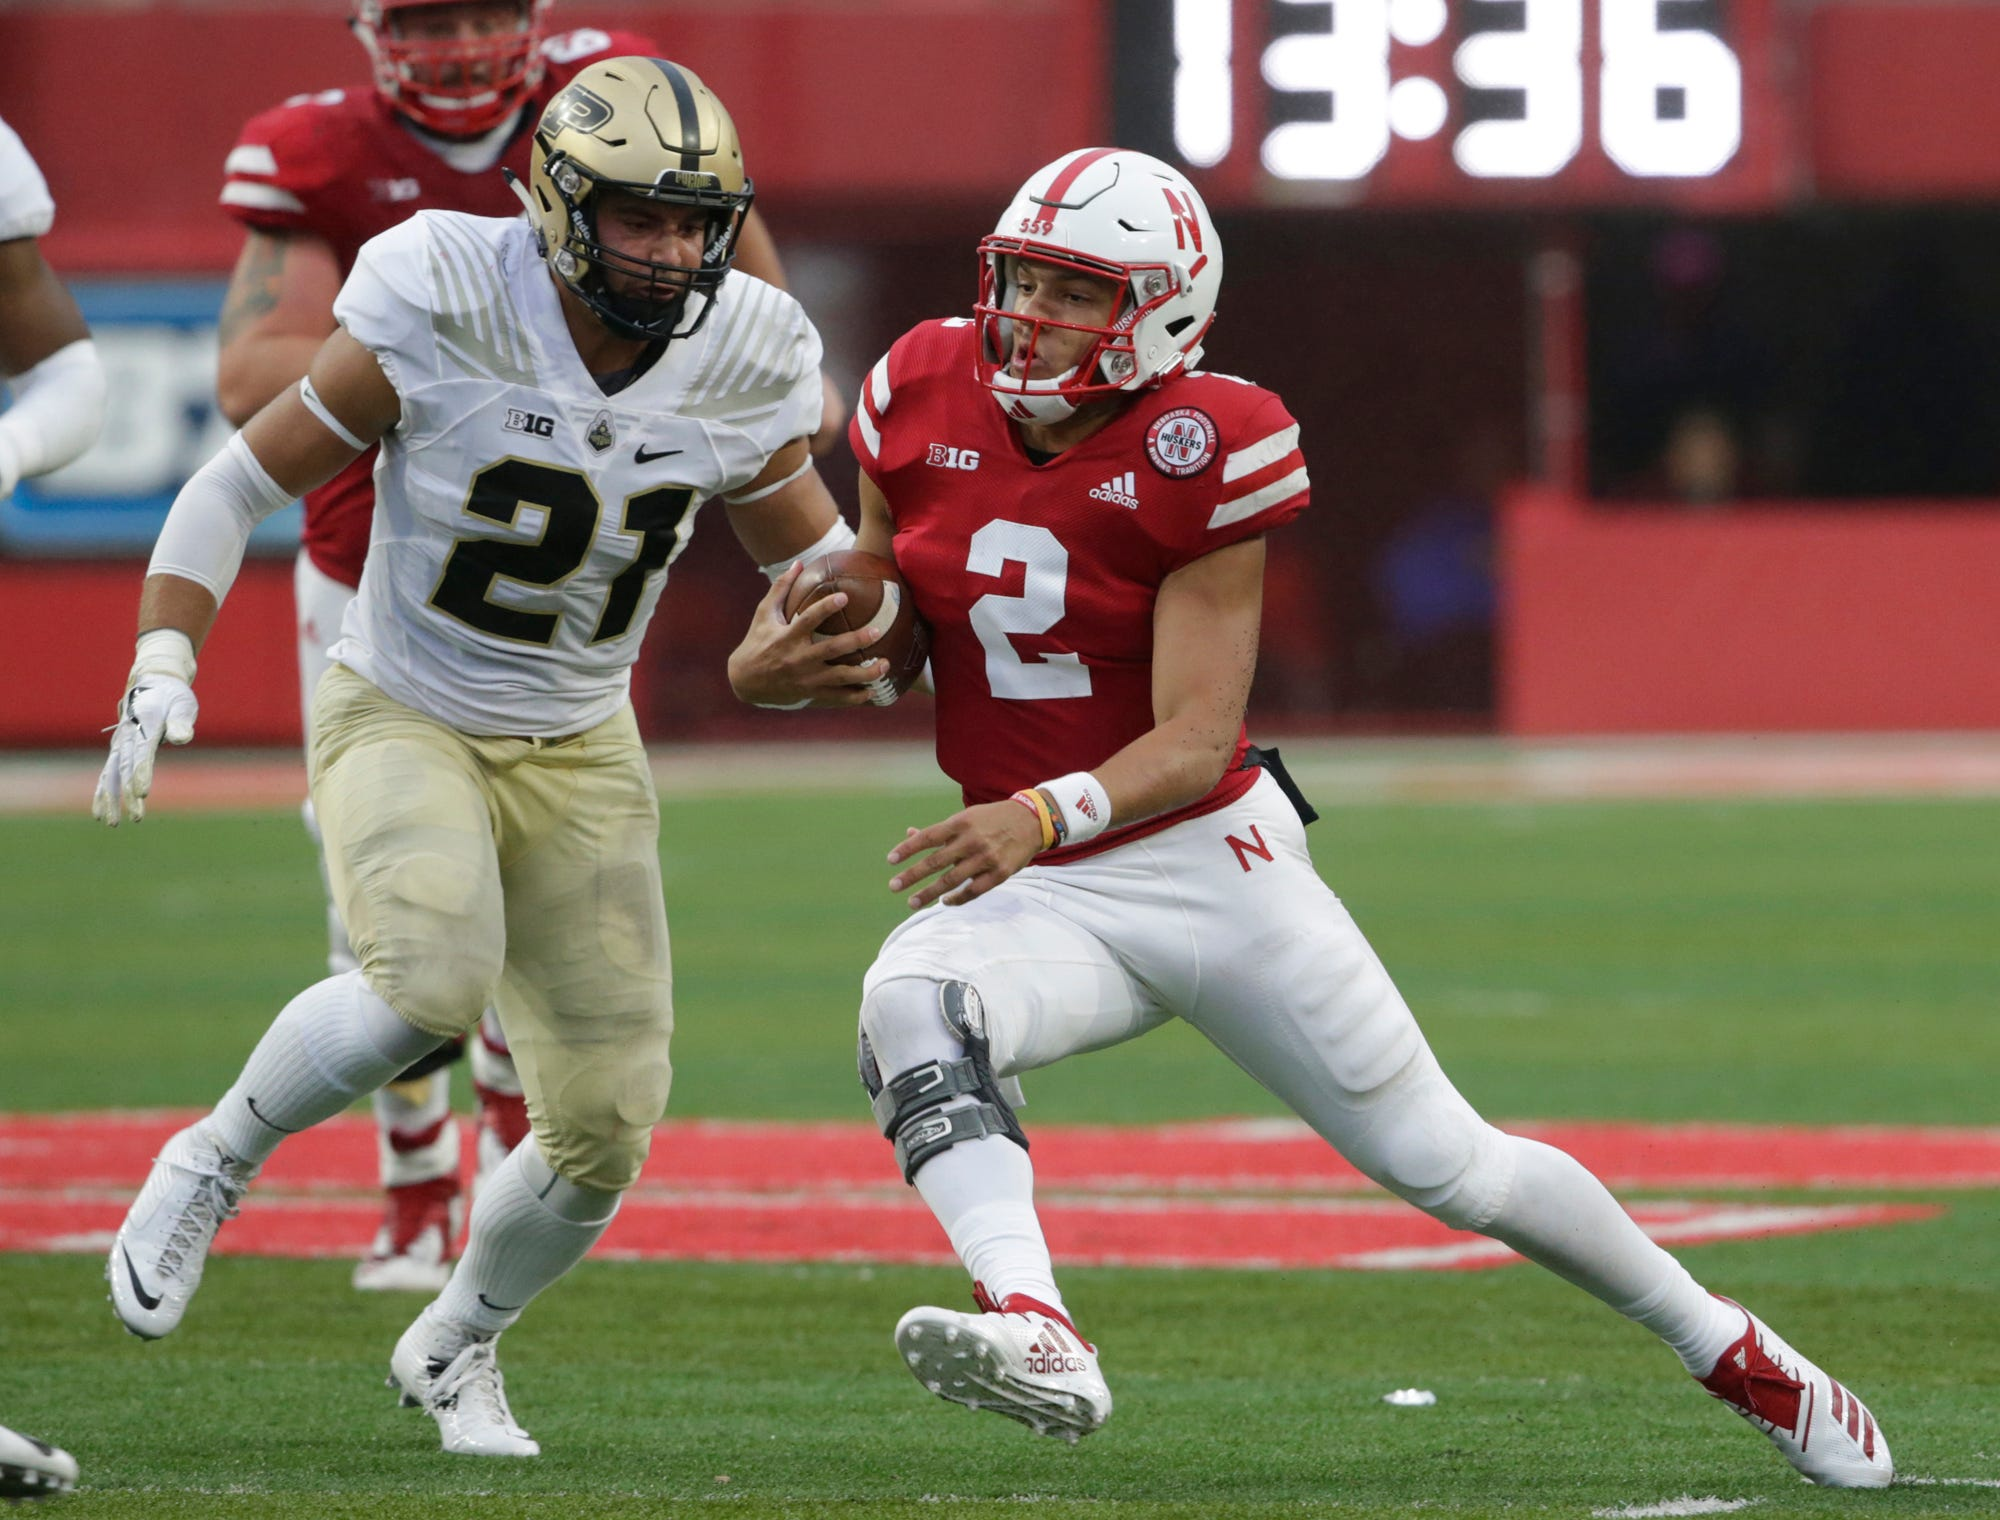 Nebraska quarterback Adrian Martinez (2) carries the ball against Purdue linebacker Markus Bailey (21) during the second half of an NCAA college football game in Lincoln, Neb., Saturday, Sept. 29, 2018. Purdue won 42-28. (AP Photo/Nati Harnik)